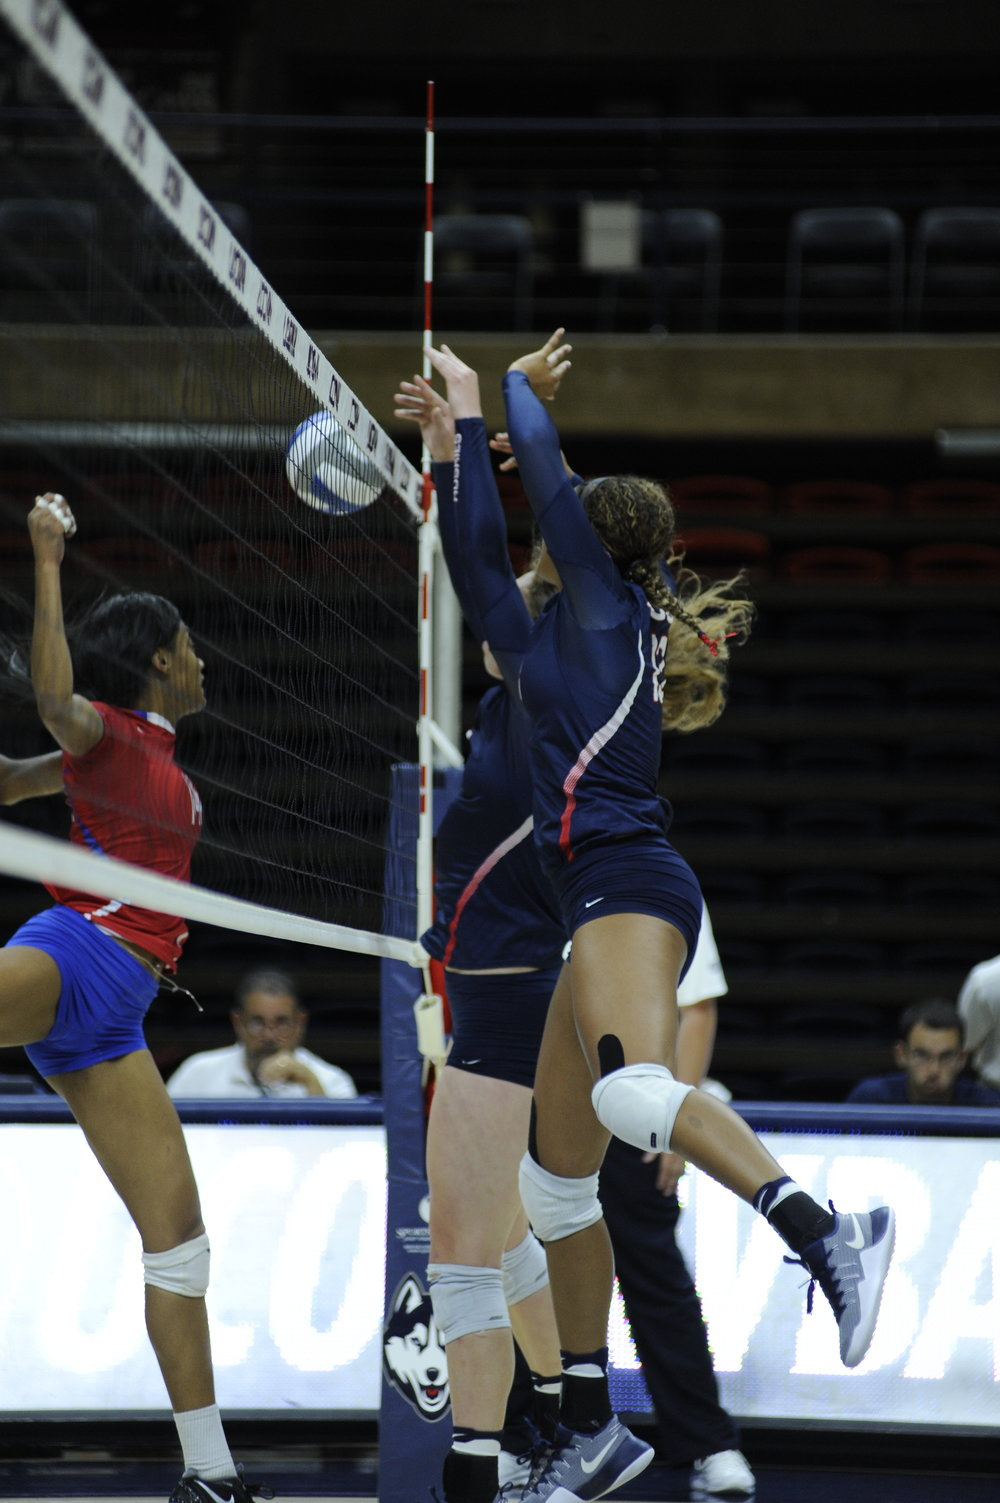 The UConn women's volleyball team beat St. Francis Brooklyn 3-1 on Saturday September 10, 2016 at Gampel Pavilion. (Jason Jiang/The Daily Campus)